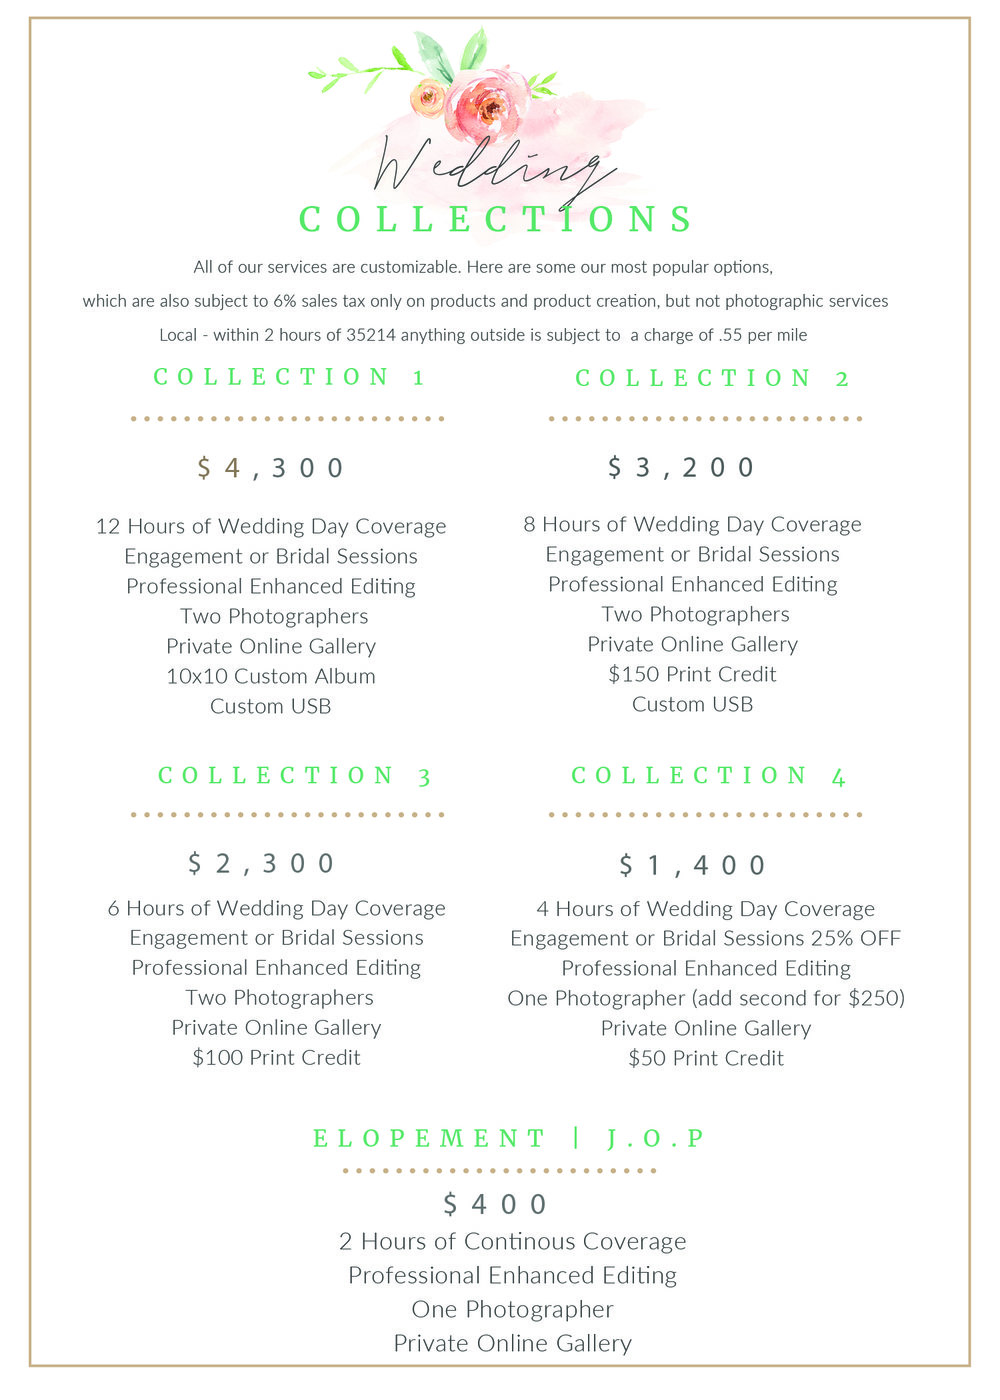 2018 wedding pricing.jpg